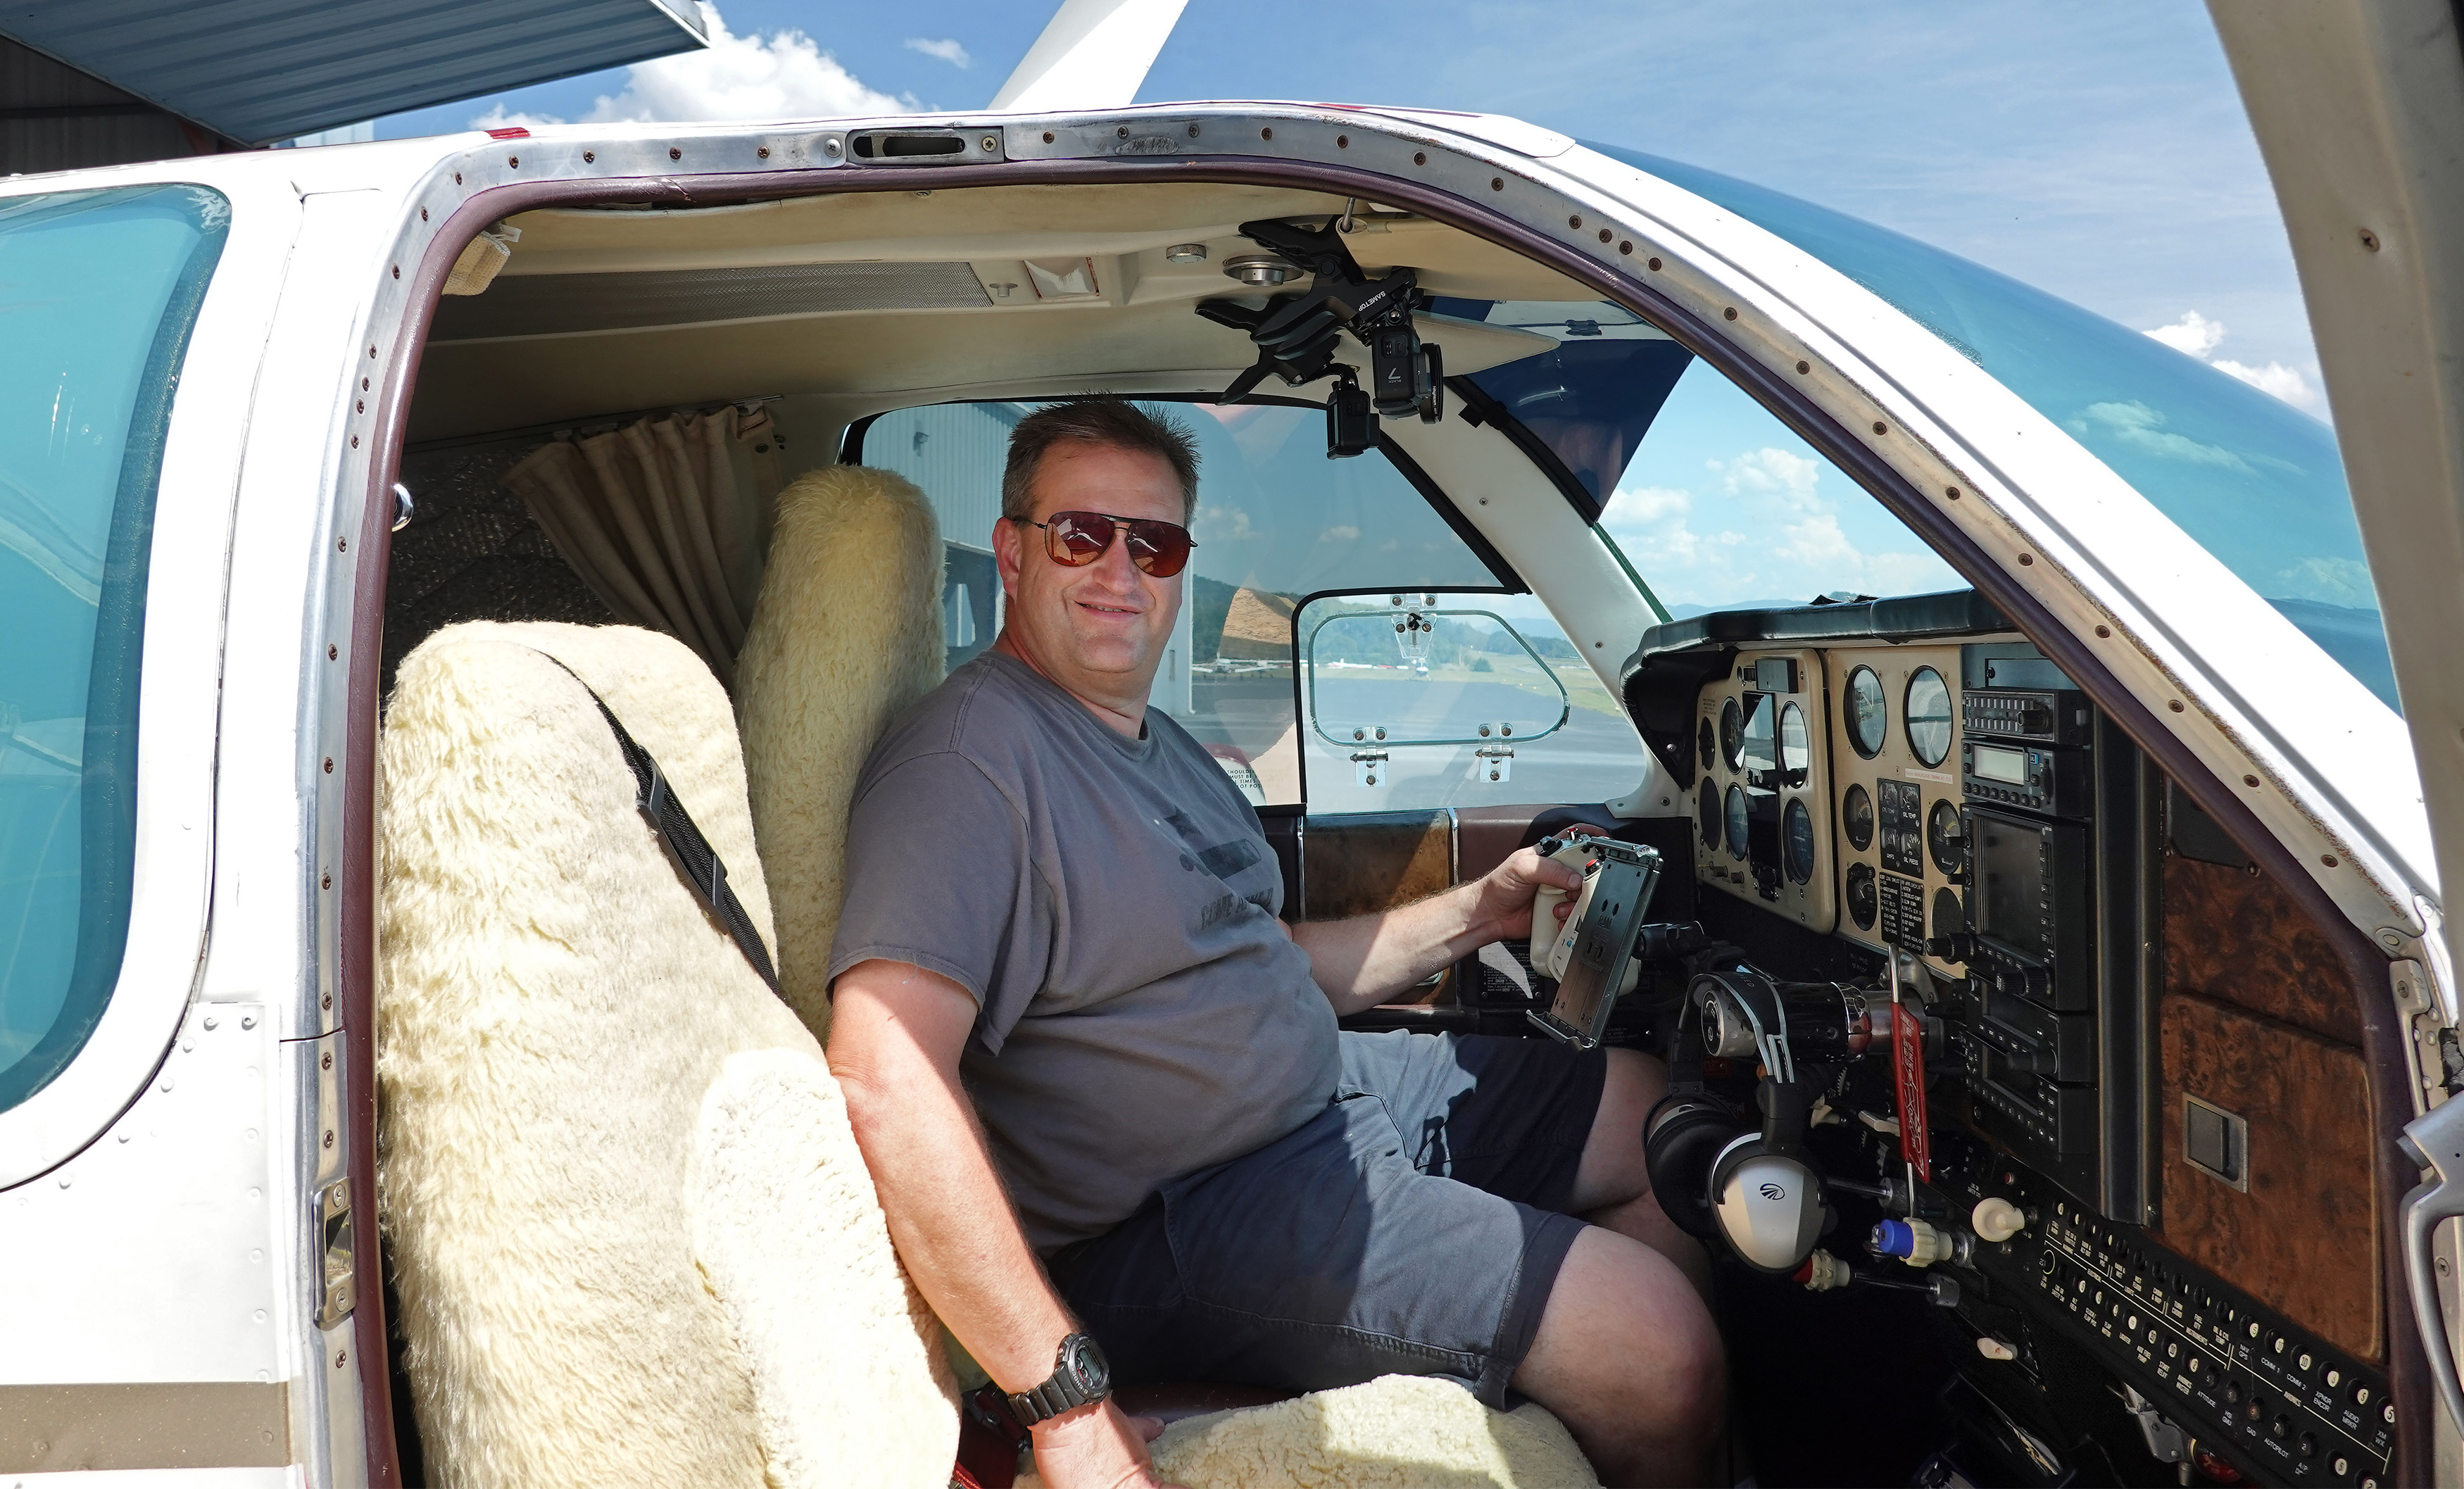 Tennessee pilot Daniel Moore plans to land at 110 airports on Sept. 11 to remember those who died in the 2001 World Trade Center attacks. Photo courtesy of Daniel Moore.